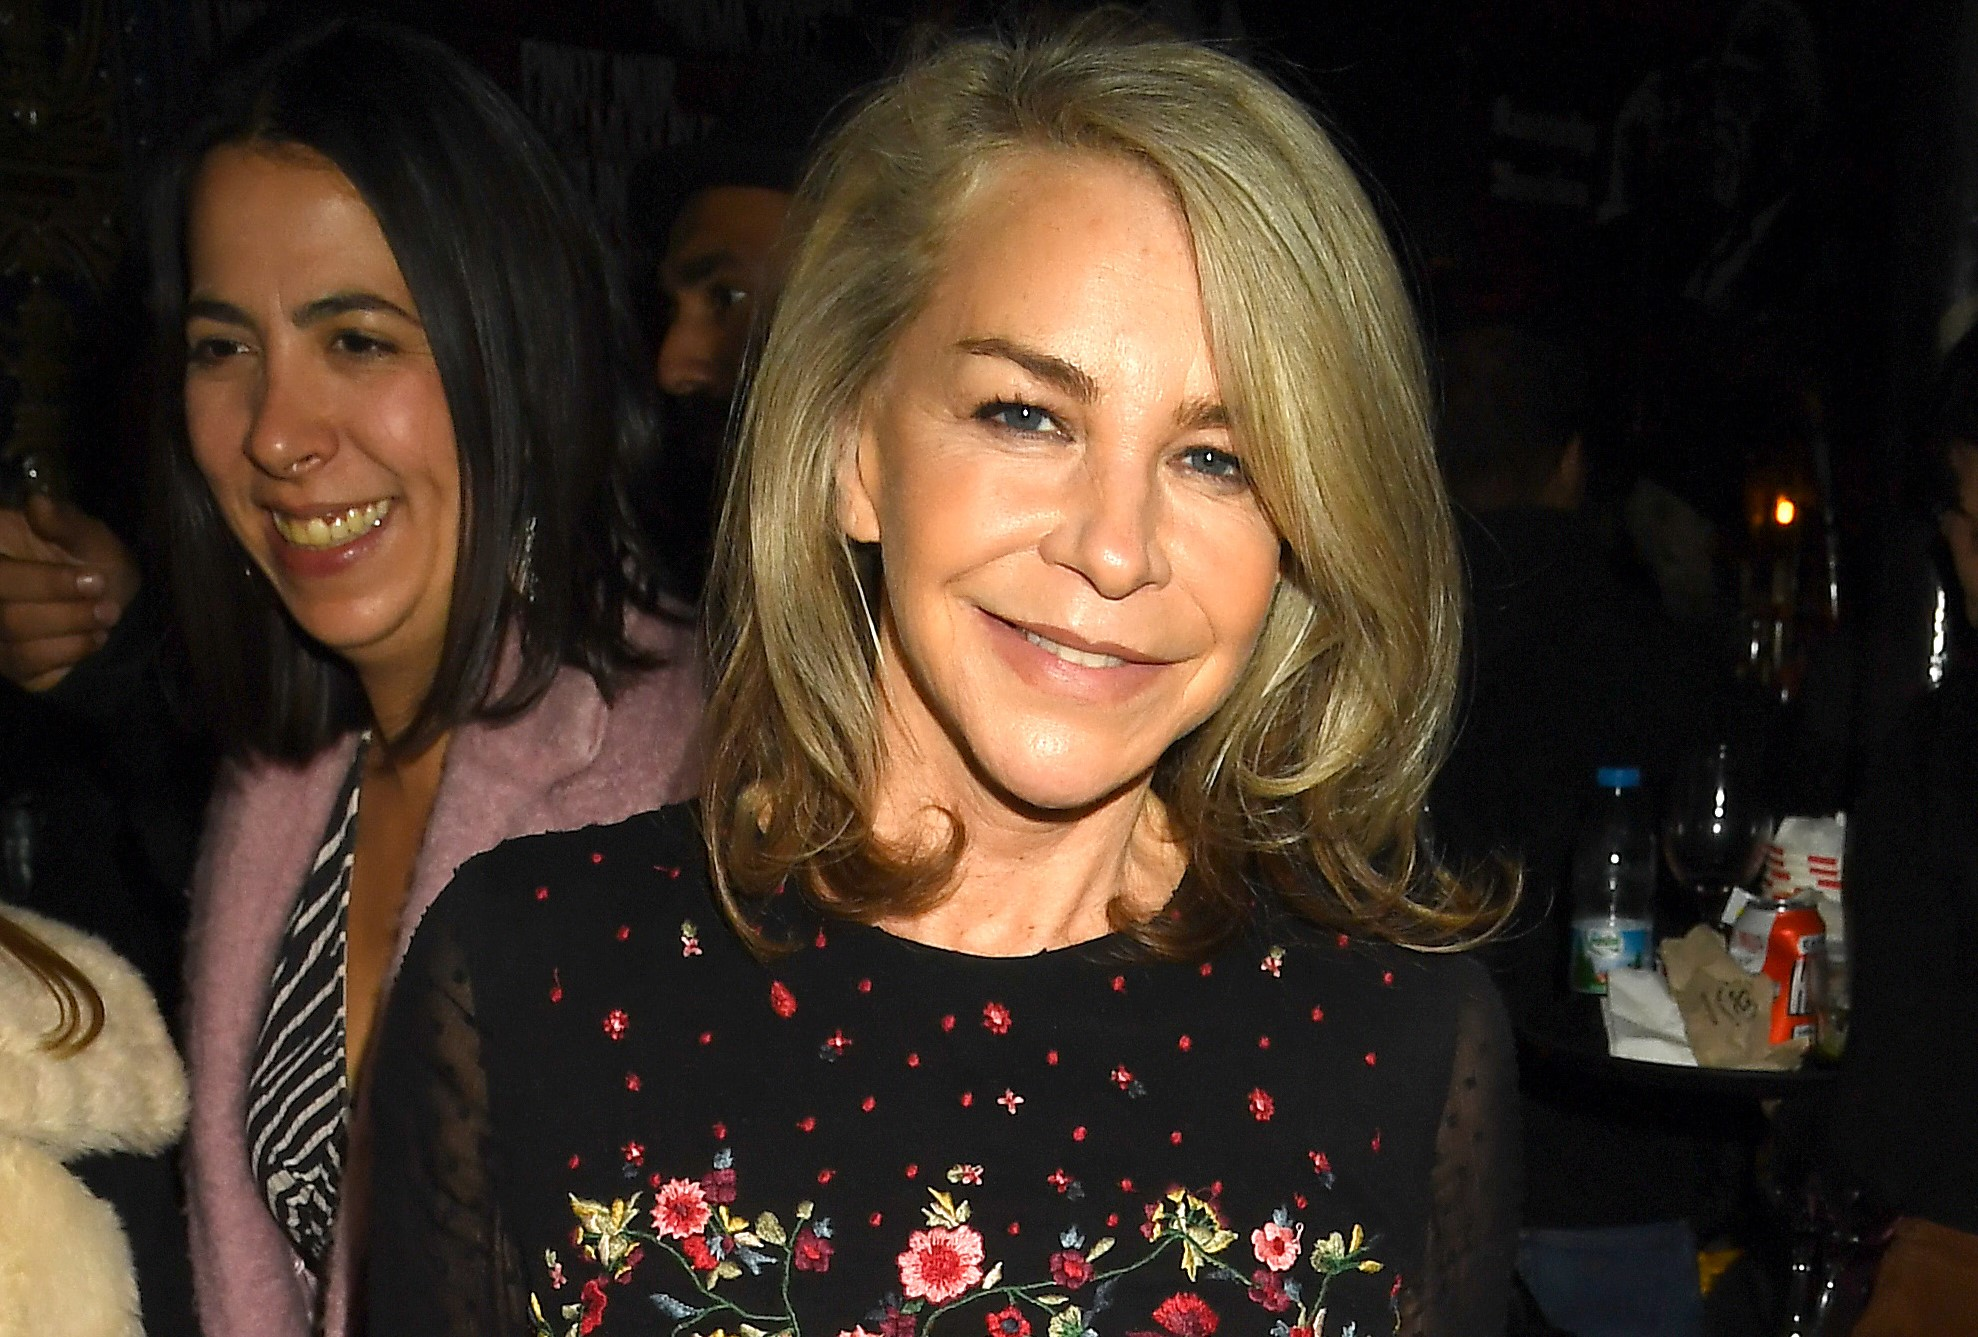 Leslie Ash, 61, 'scared' to look after grandson because spine condition limits her mobility